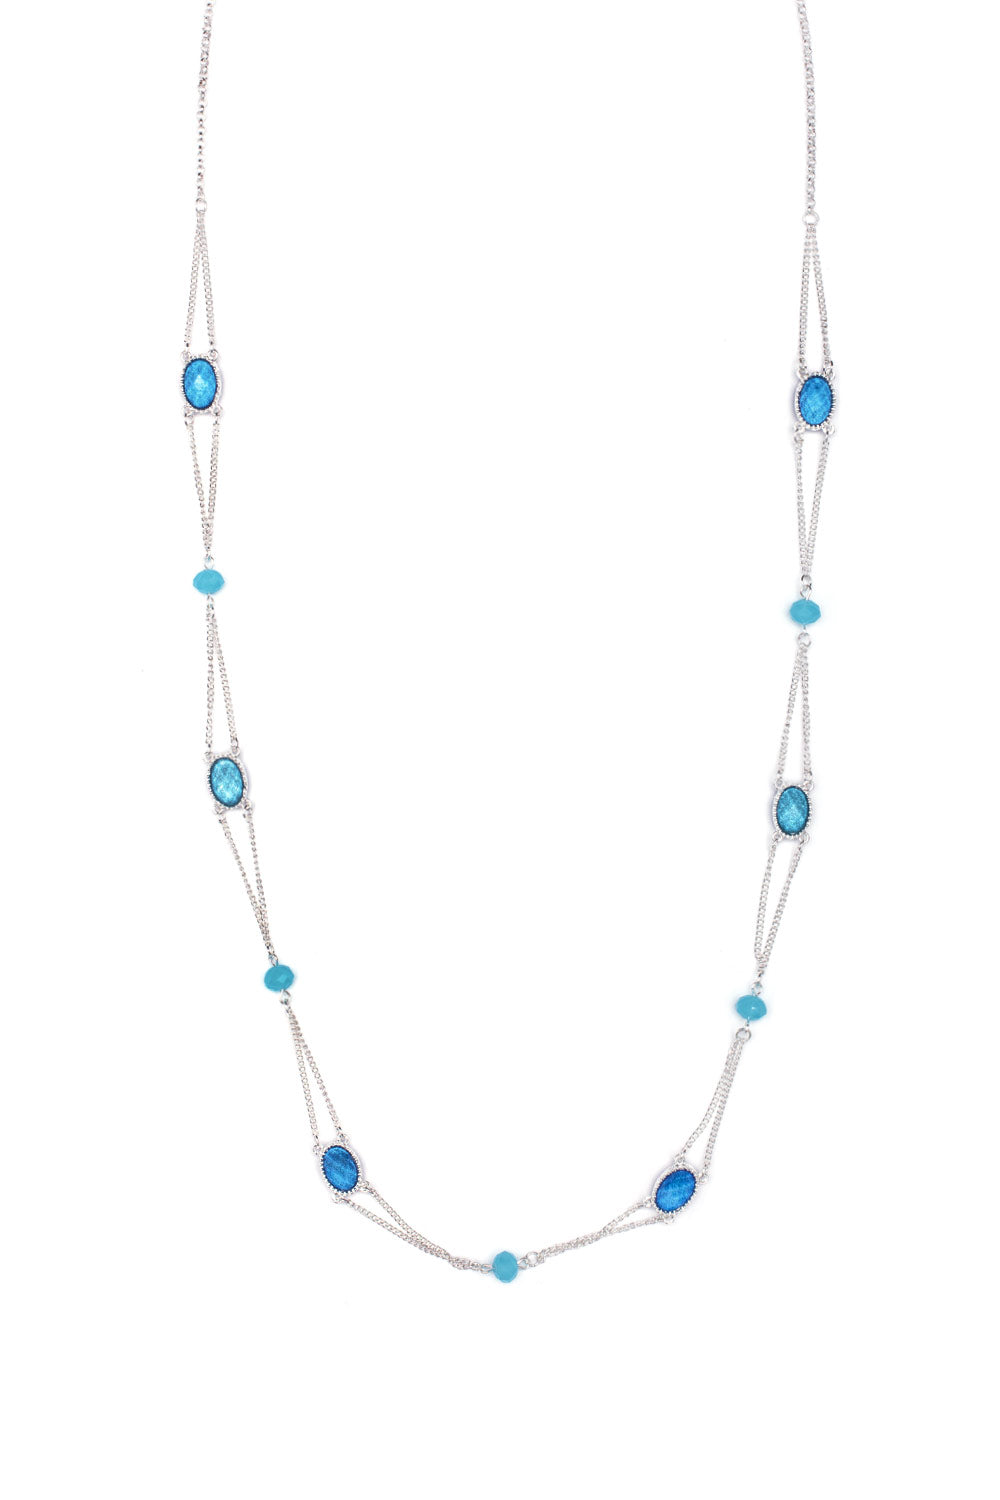 Type 2 Bountiful Blue Necklace